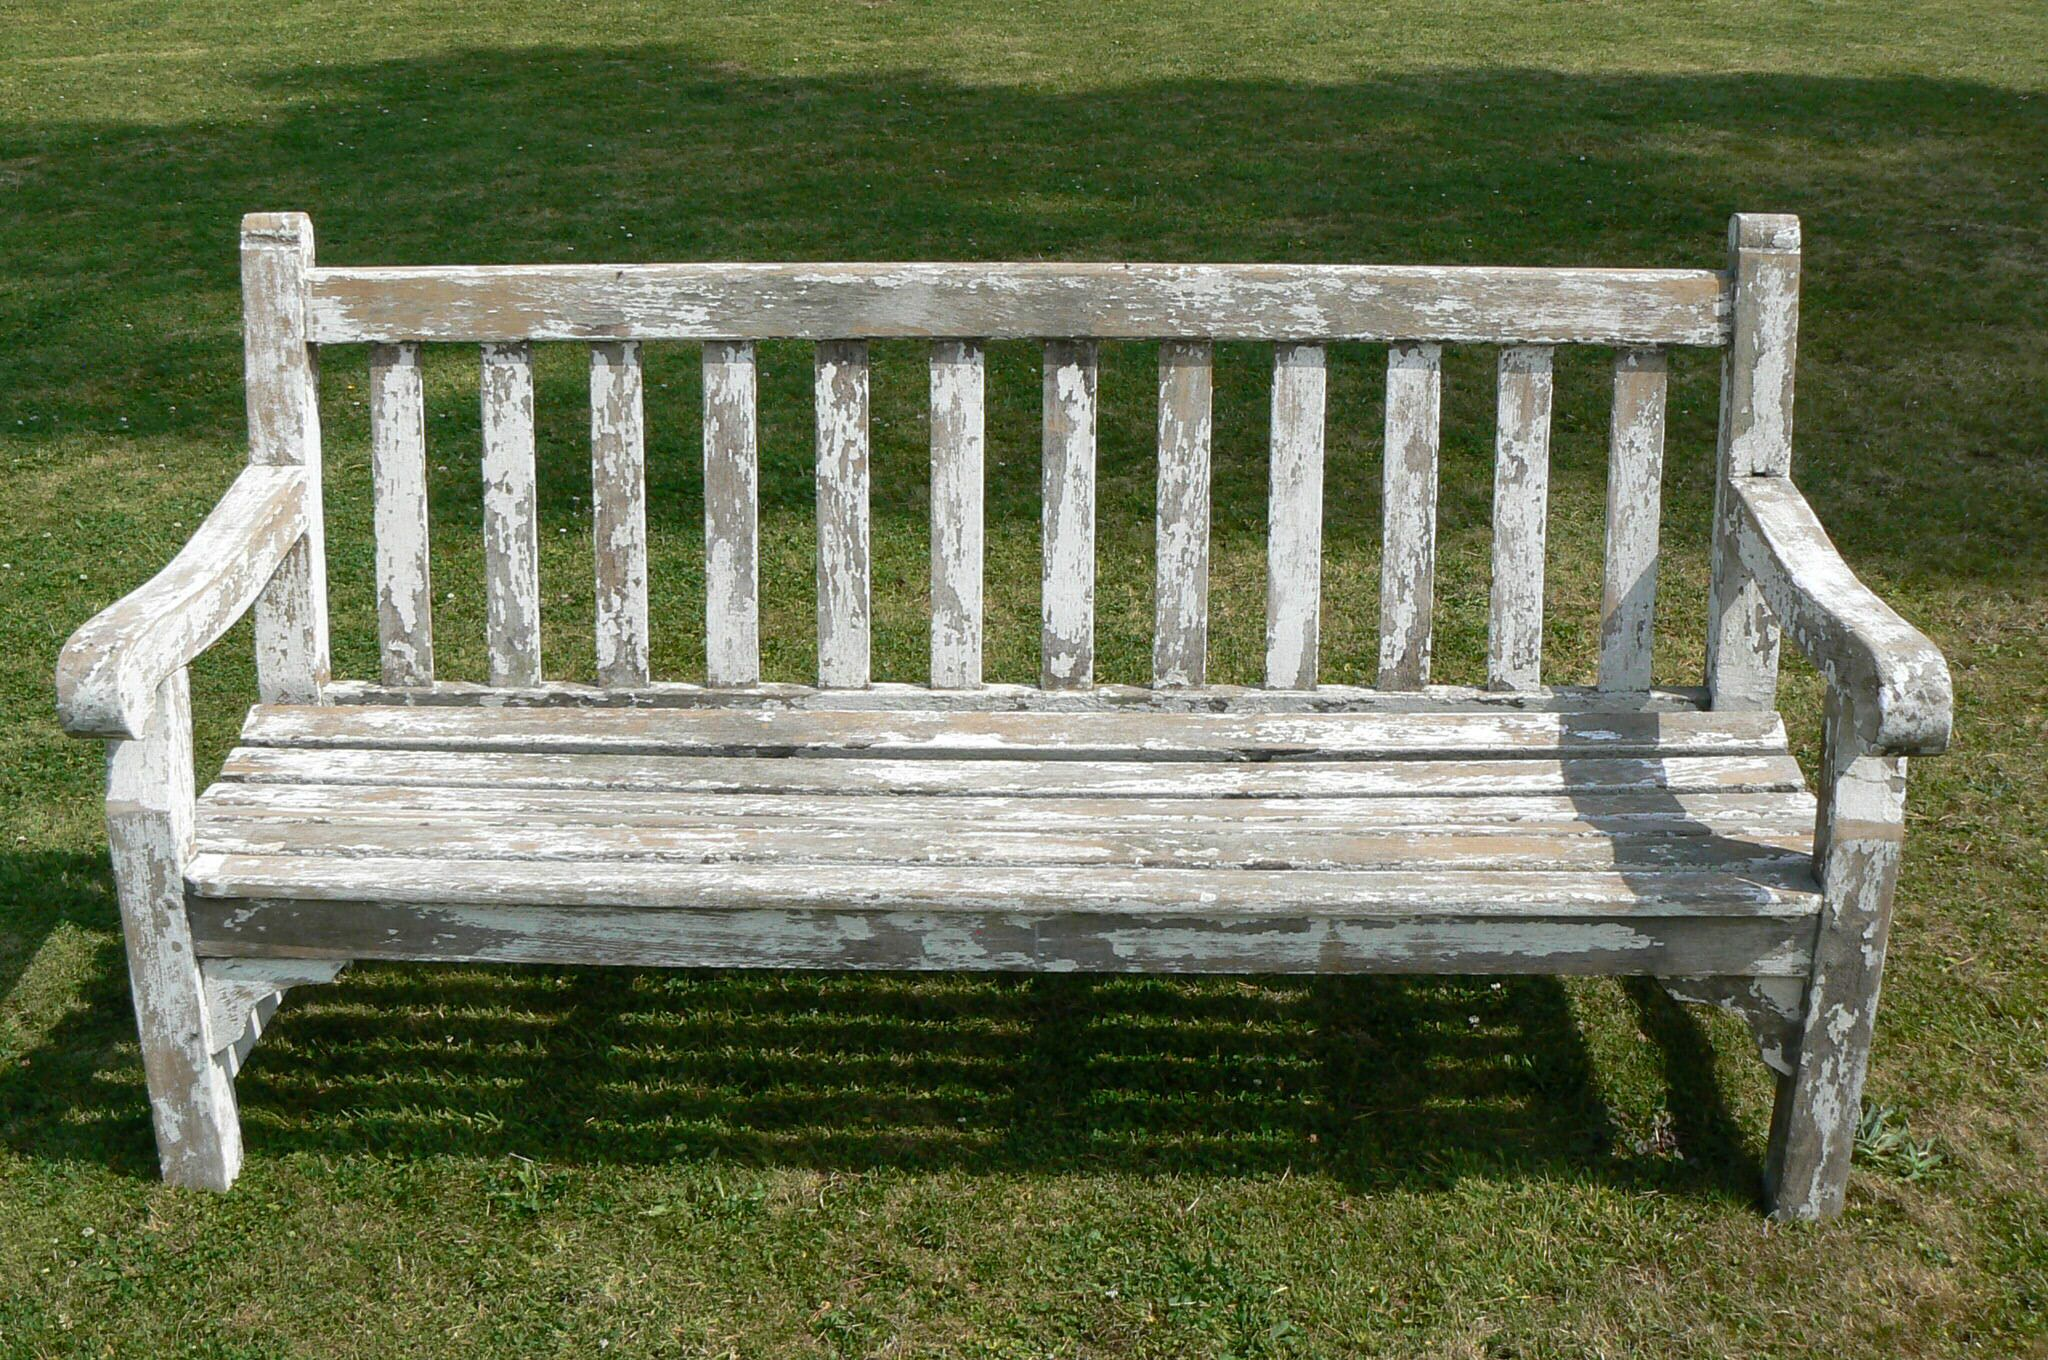 Wondrous Old Wooden Garden Bench Yard And Garden Wooden Garden Caraccident5 Cool Chair Designs And Ideas Caraccident5Info